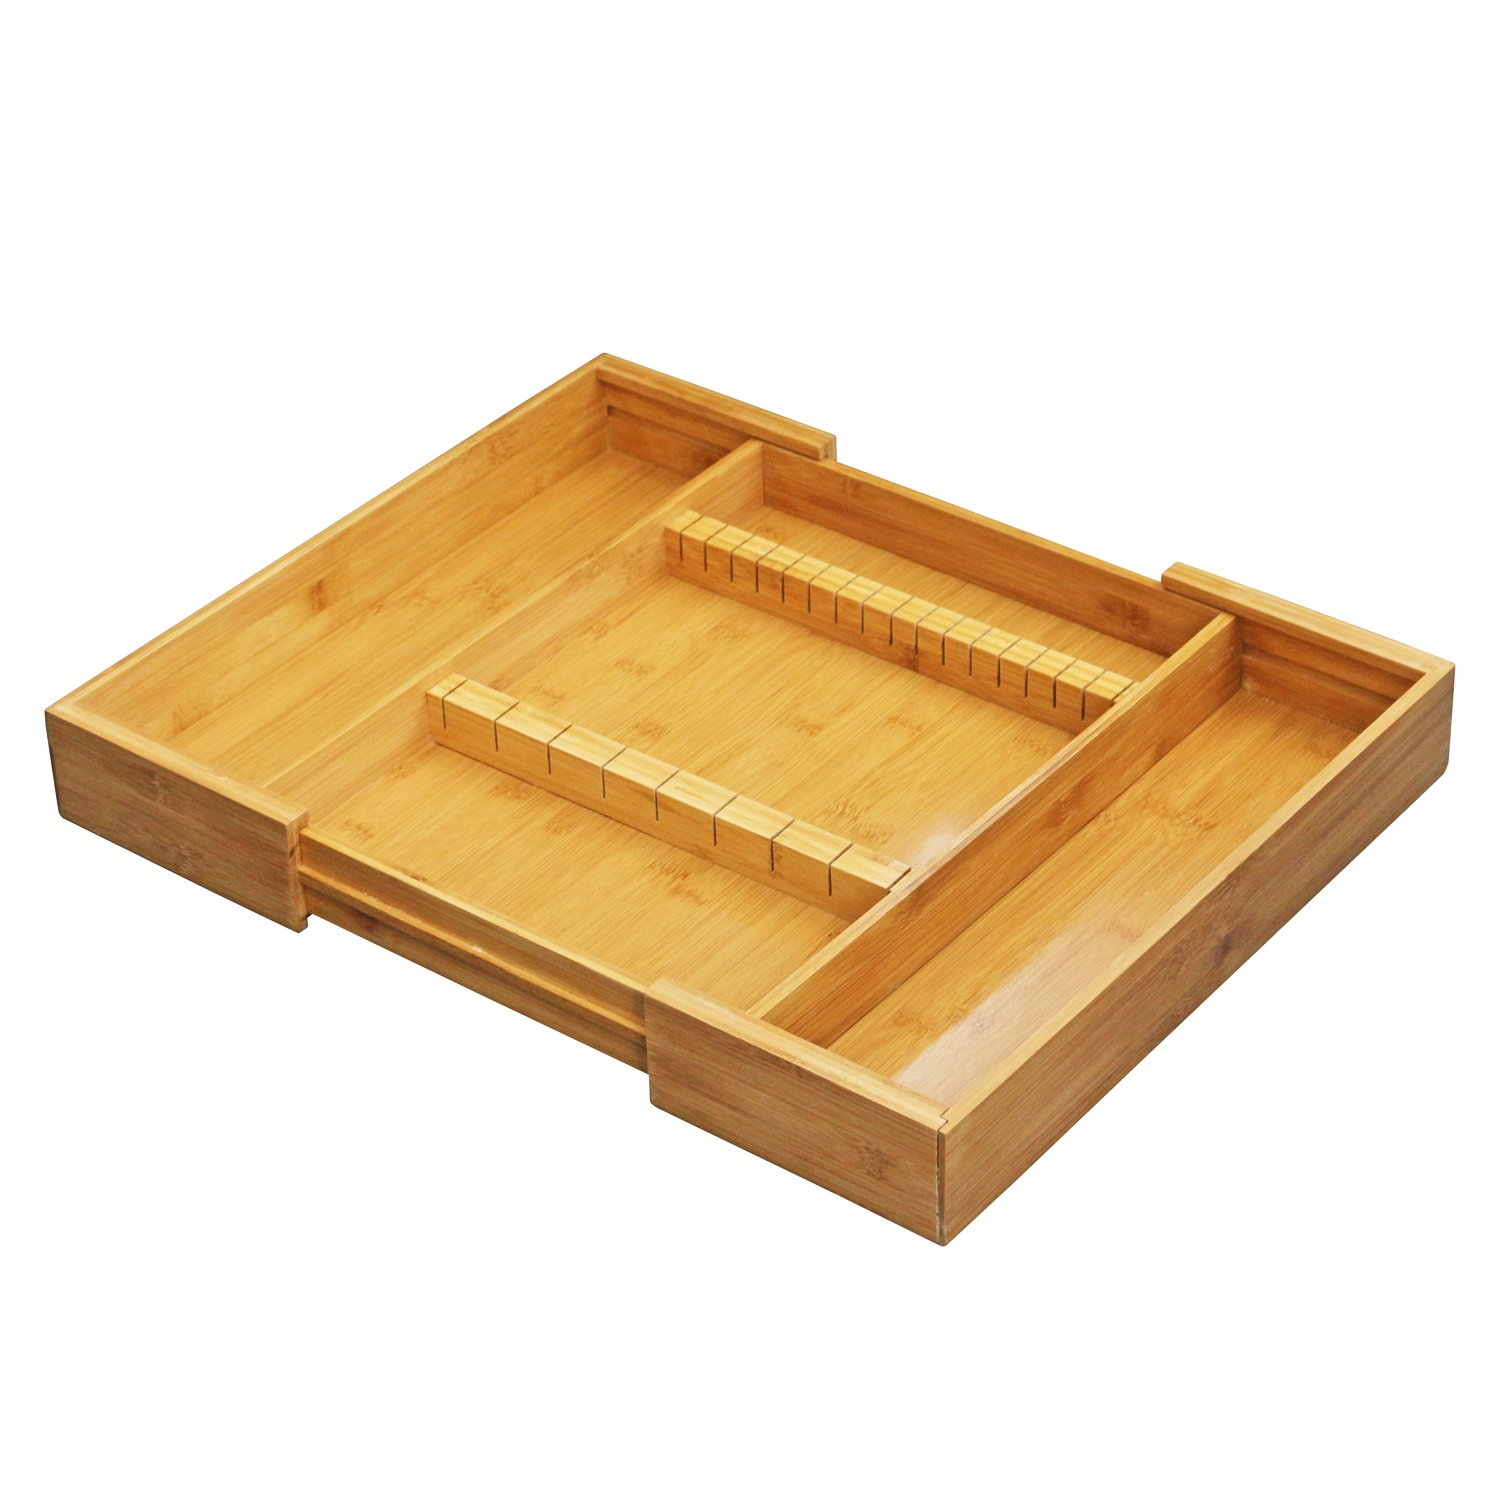 FURINNO Dapur Bamboo Expandable Drawer Organizer with Cutlery Storage, Natural